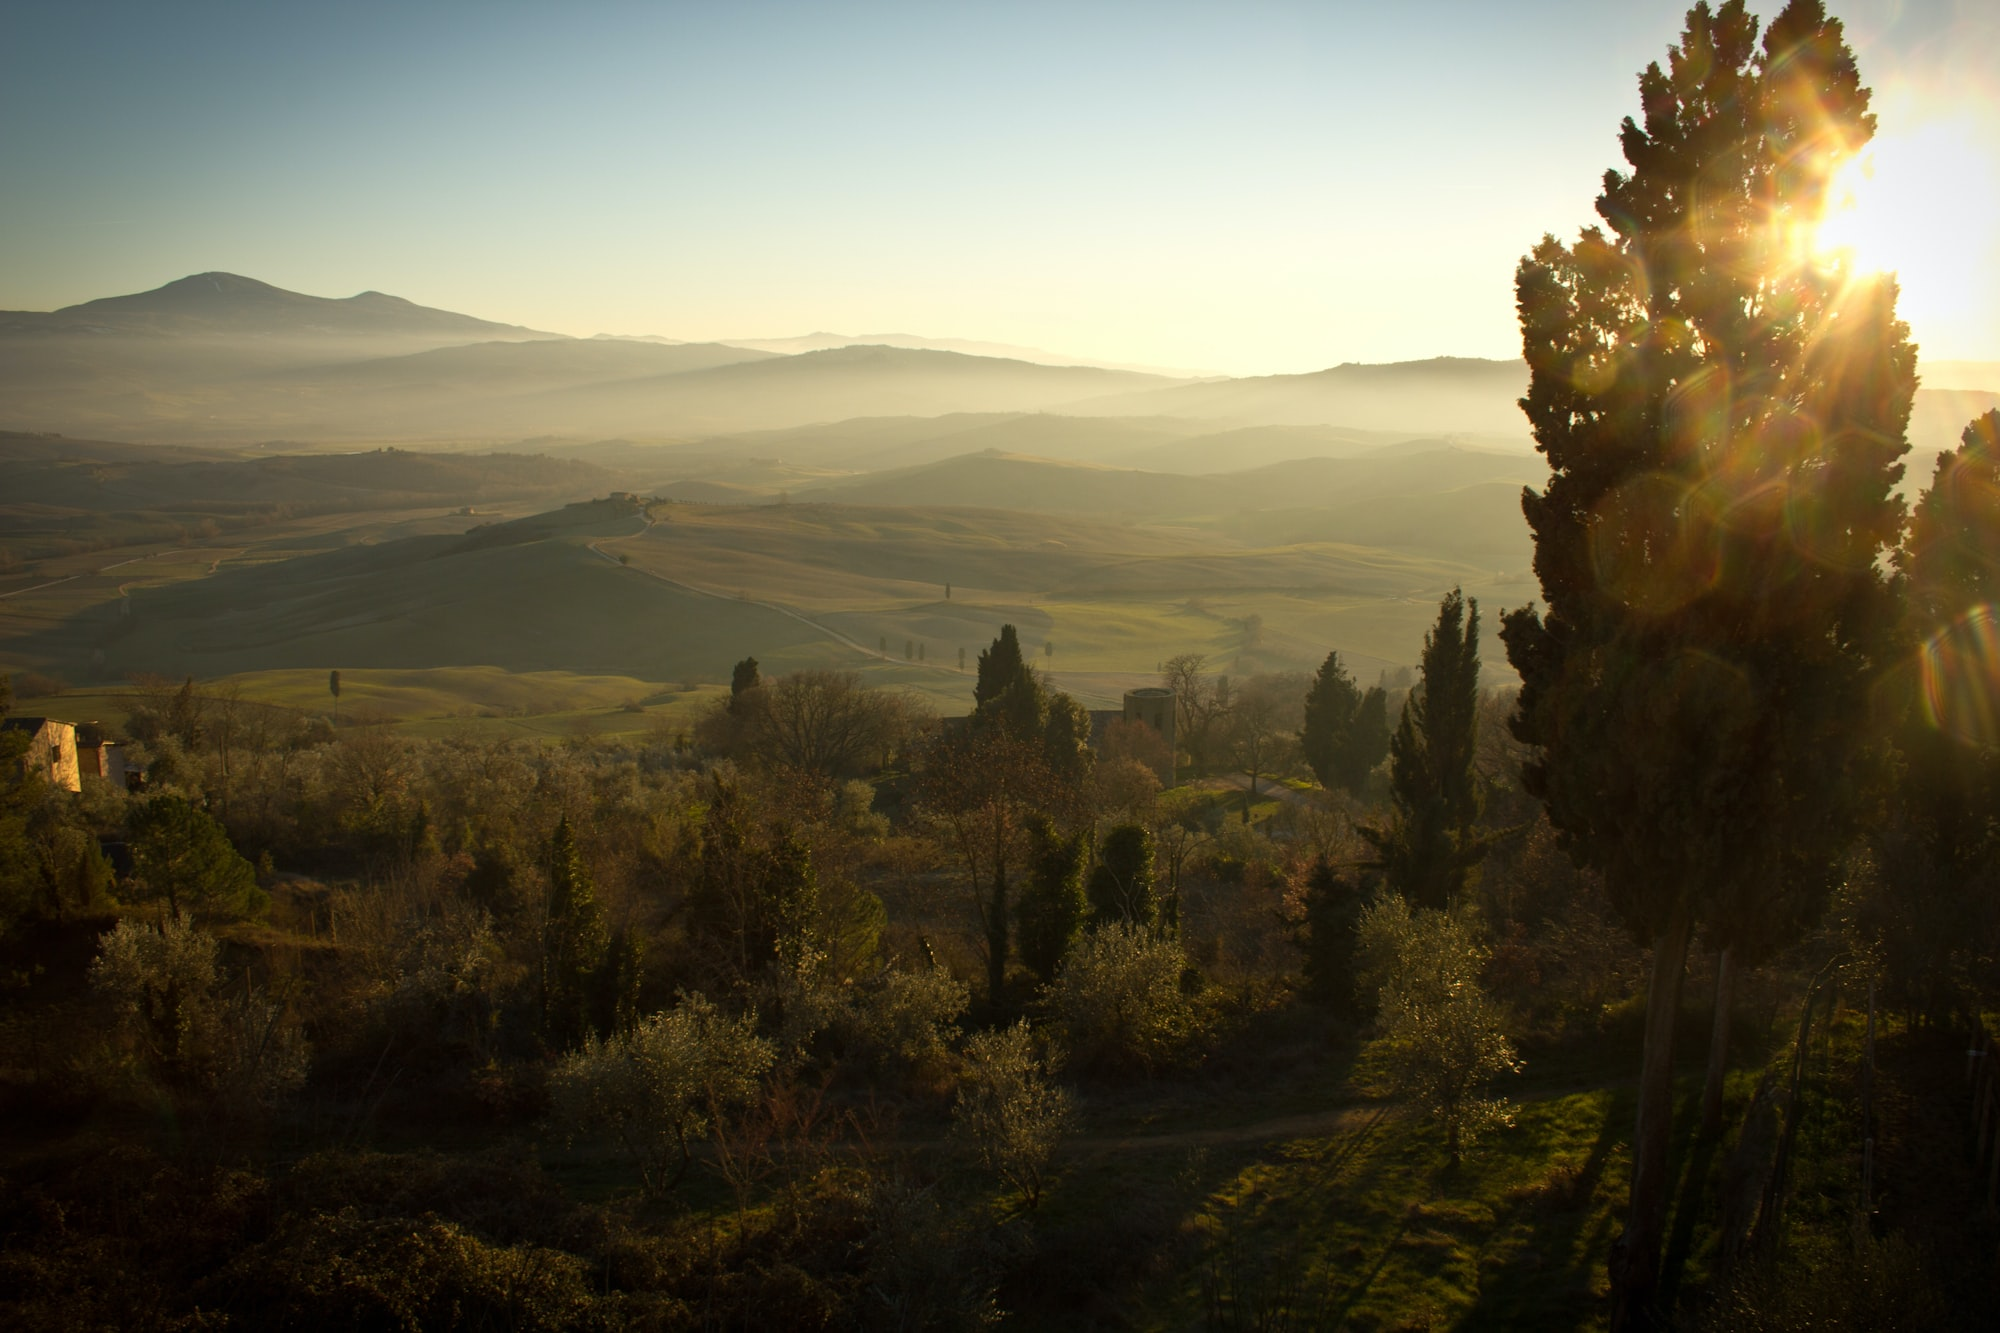 A picturesque landscape with a fertile valley under the setting sun